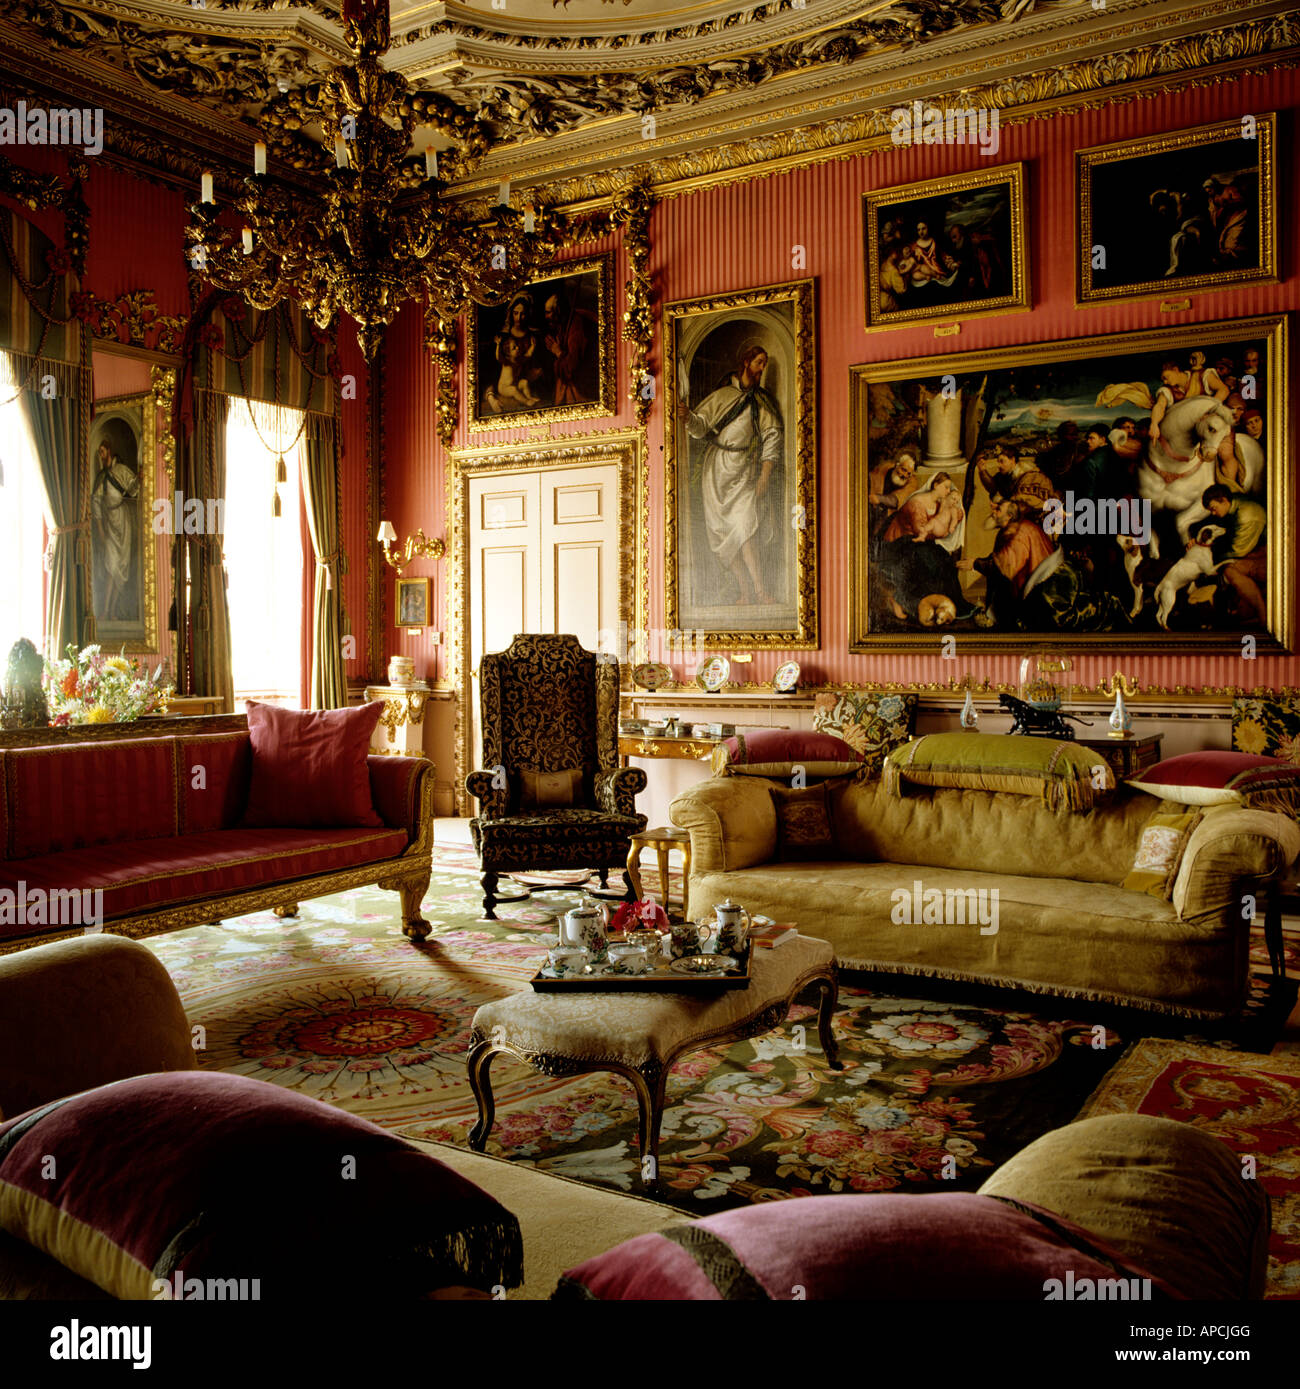 Downton Abbey Floor Plan Drawing Room At Burghley House Stock Photo Royalty Free